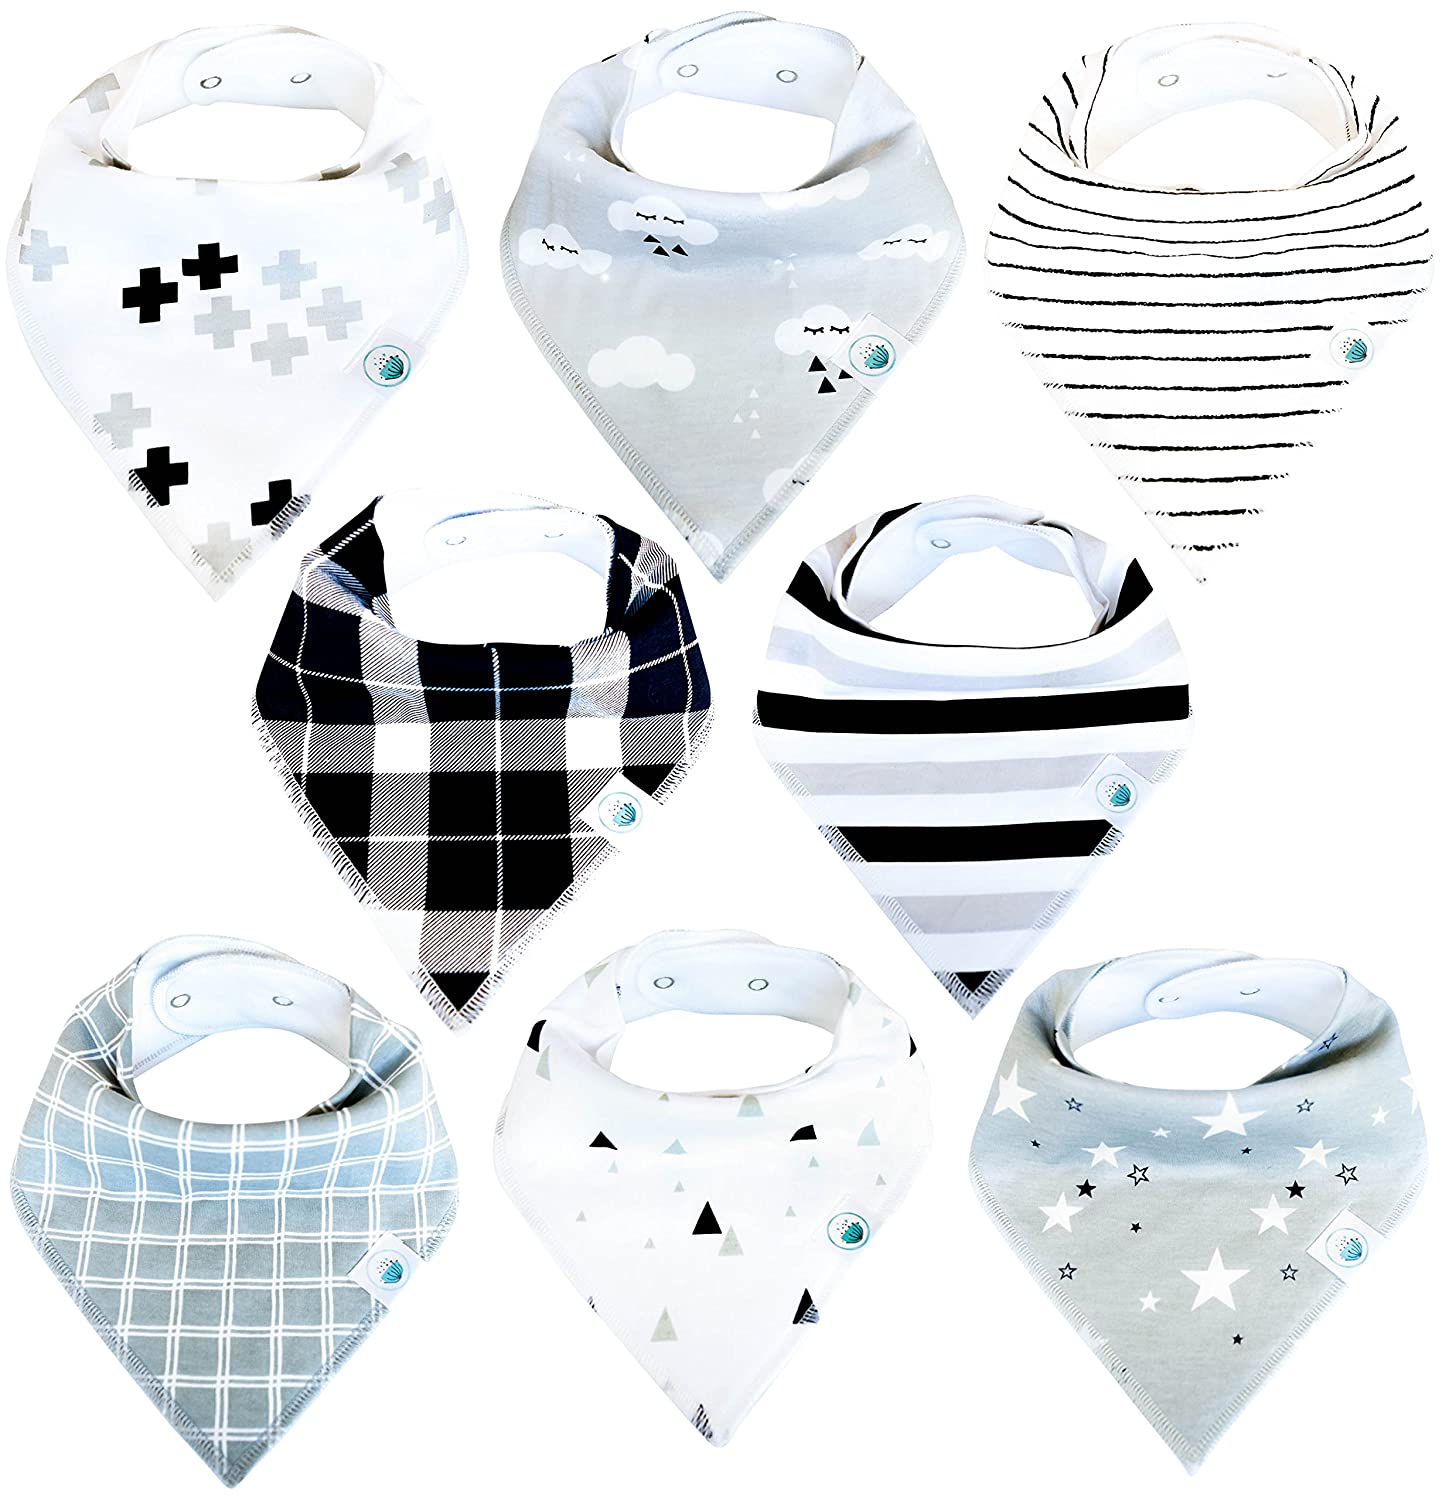 gerFogoo Bibs for Girls /& Boys,100/% Cotton Extra Soft Baby Wash Cloth,5 Pack Reusable Extra Soft Newborn Baby Wipes,Bath Shower with Printed Design,Baby Face Towel and Wash Cloths for Bath